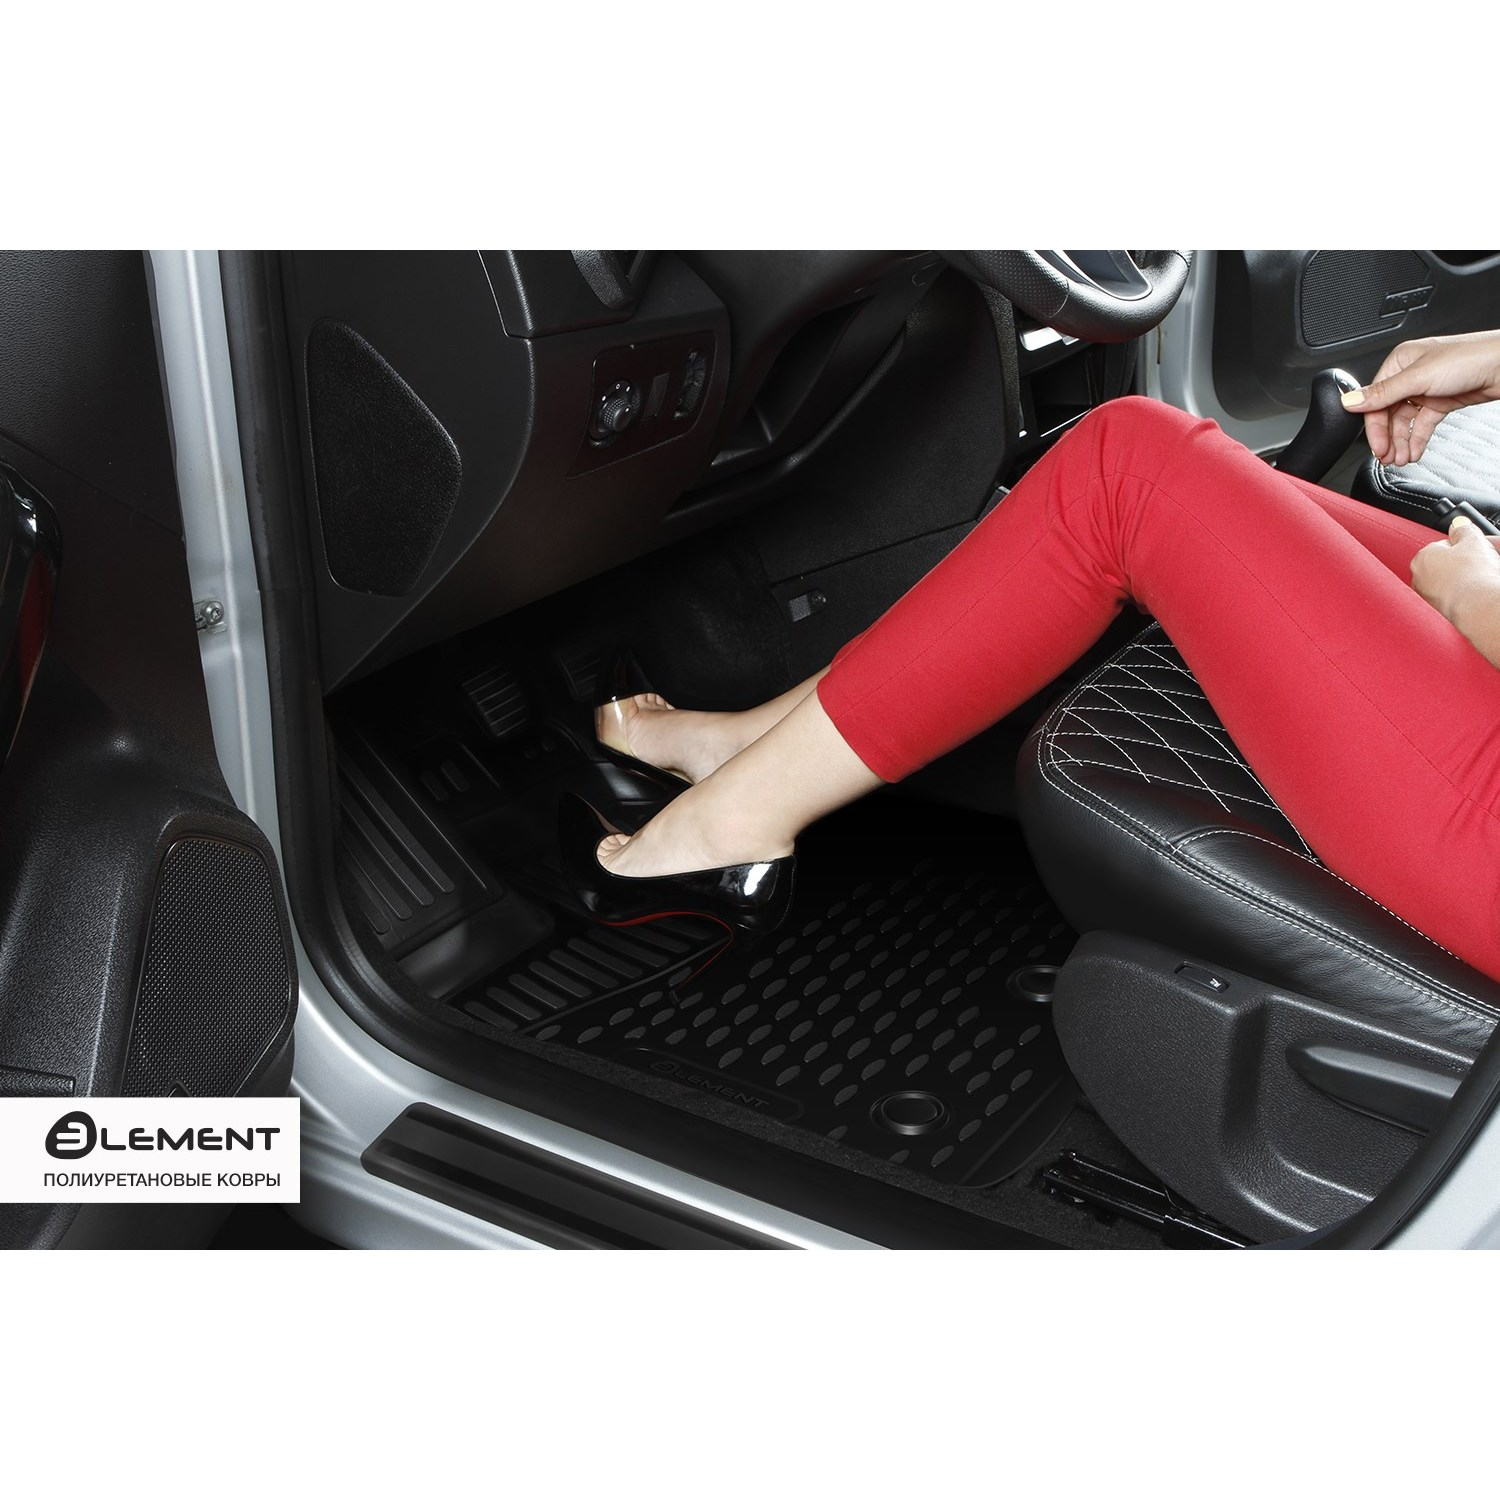 3D Mats In The Salon For PEUGEOT 308, 2014, 4 PCs ELEMENT3D3828210k